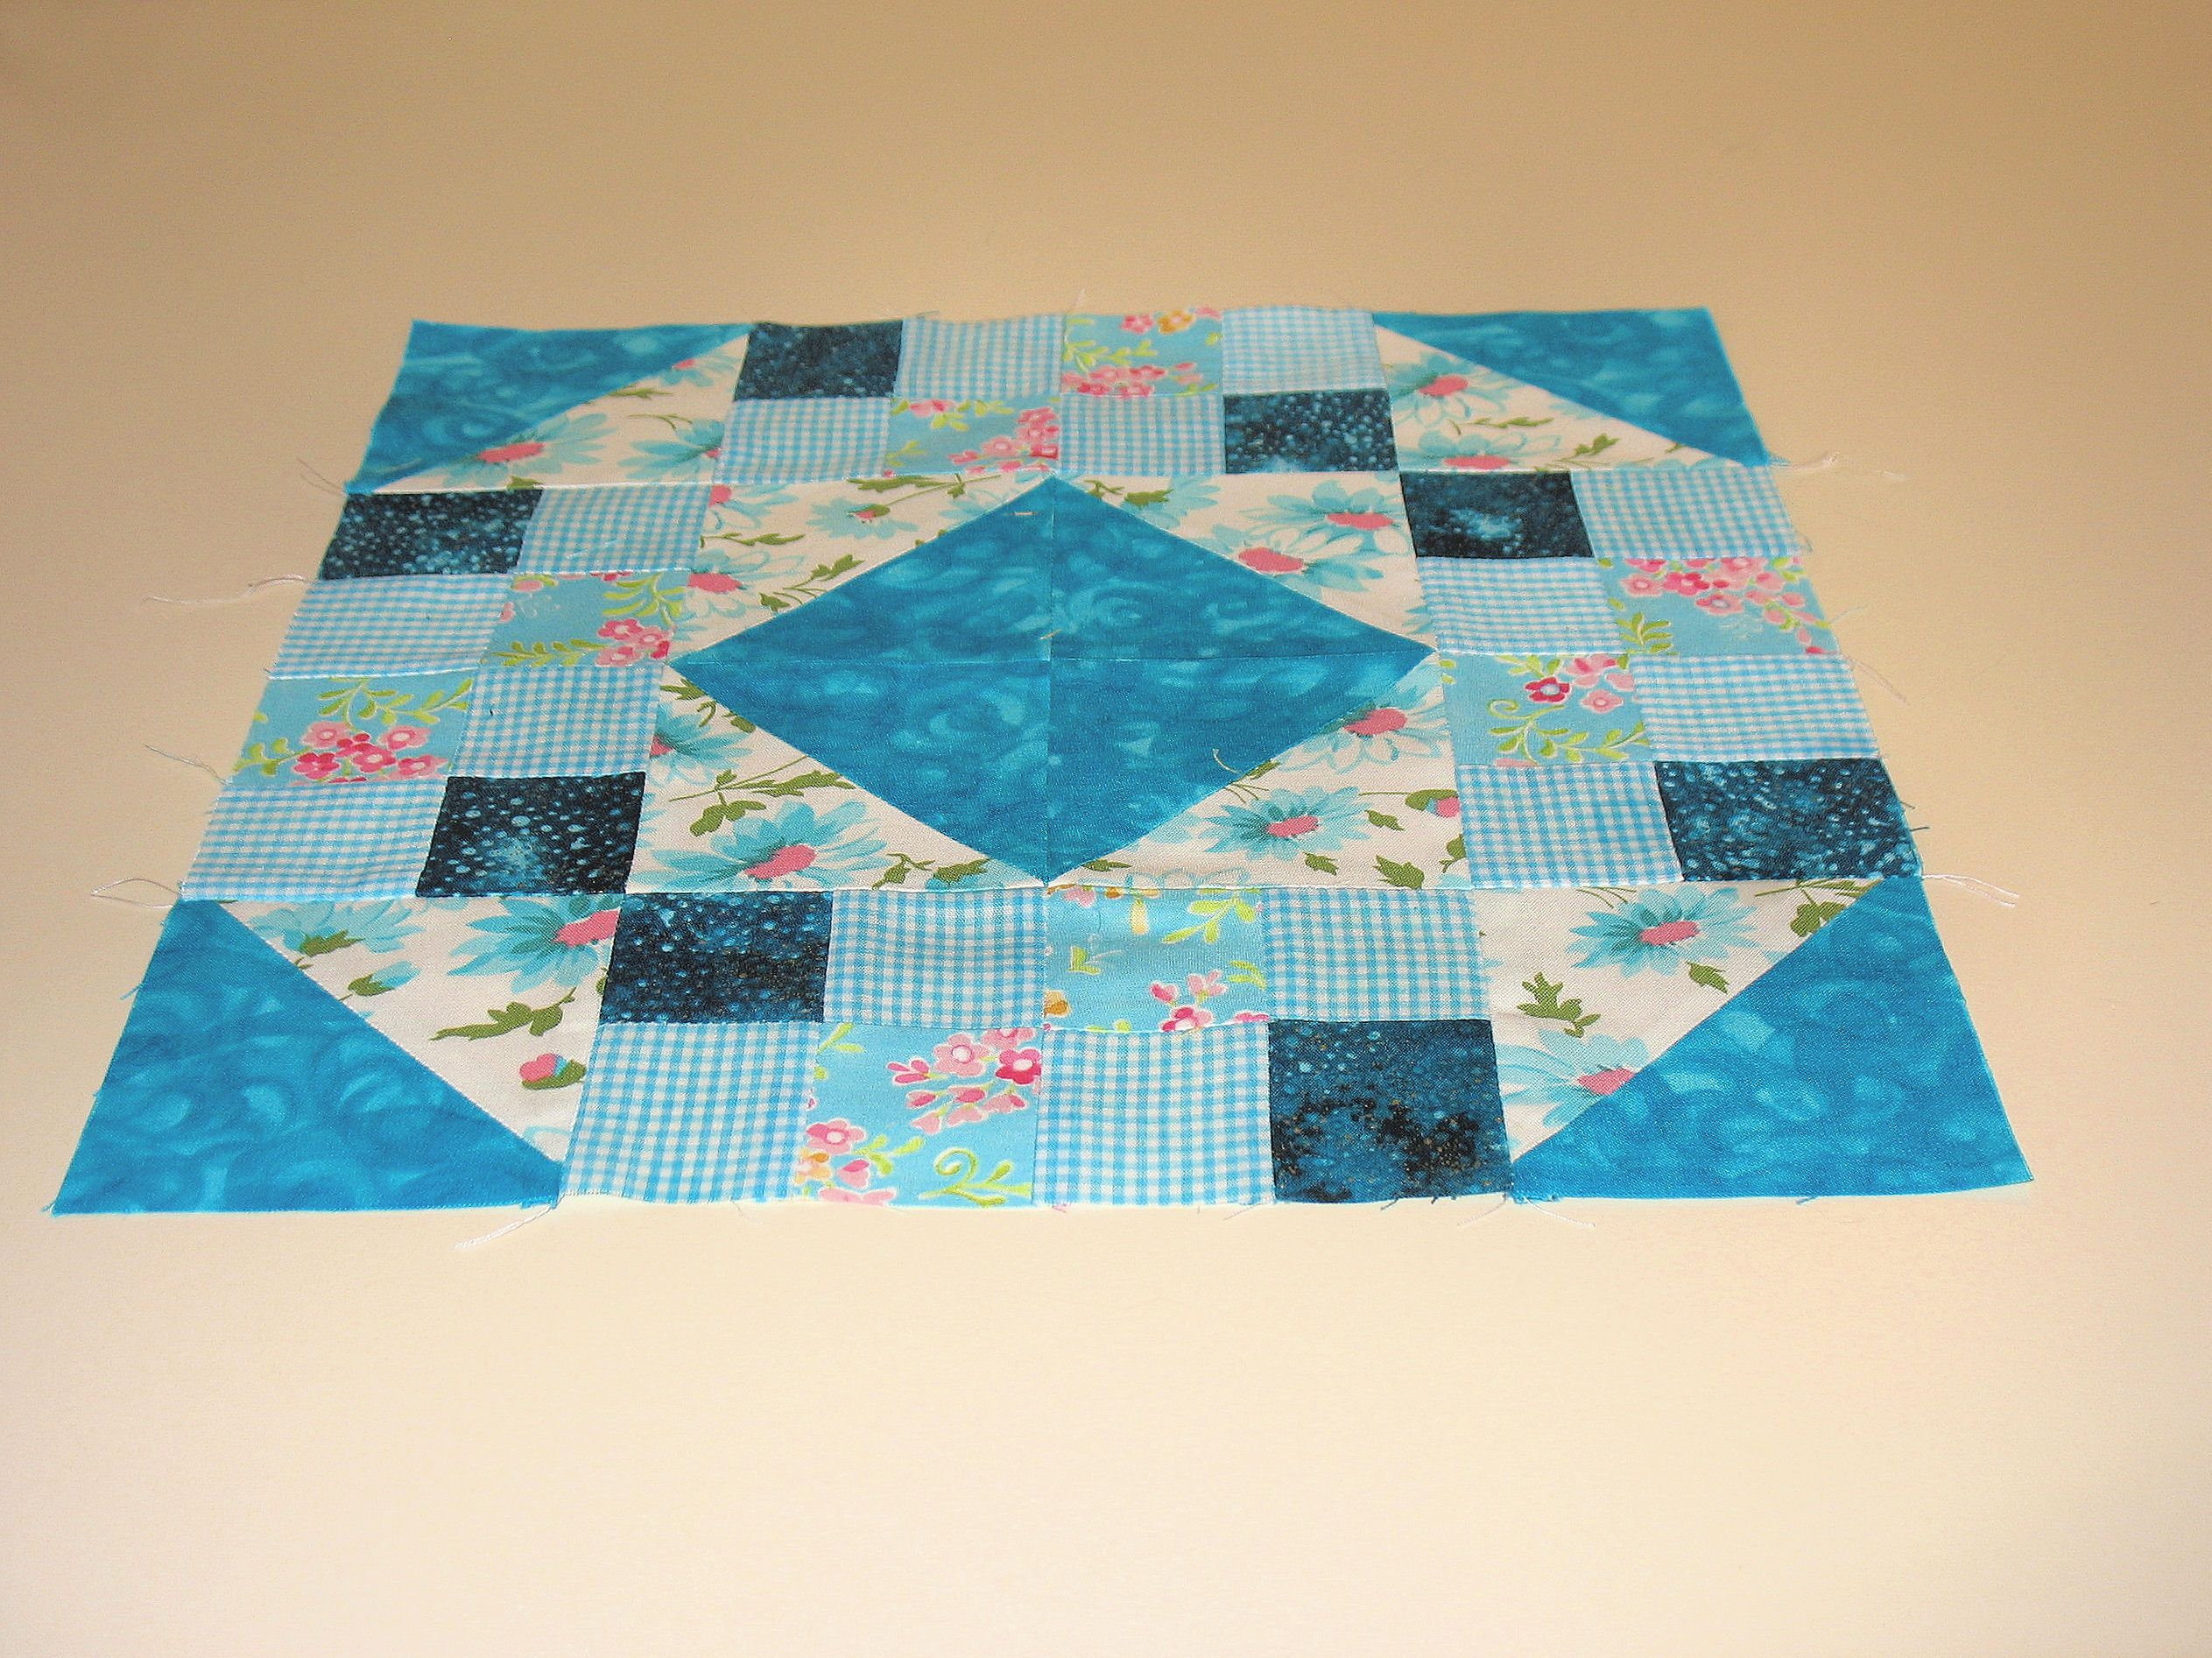 "A traditional block pattern called ""Jewel Box"" pieced by Pam Wilson in September  2014, incorporating gingham and other fabrics from the stash of my aunt Johanna Wackerle Tanner."